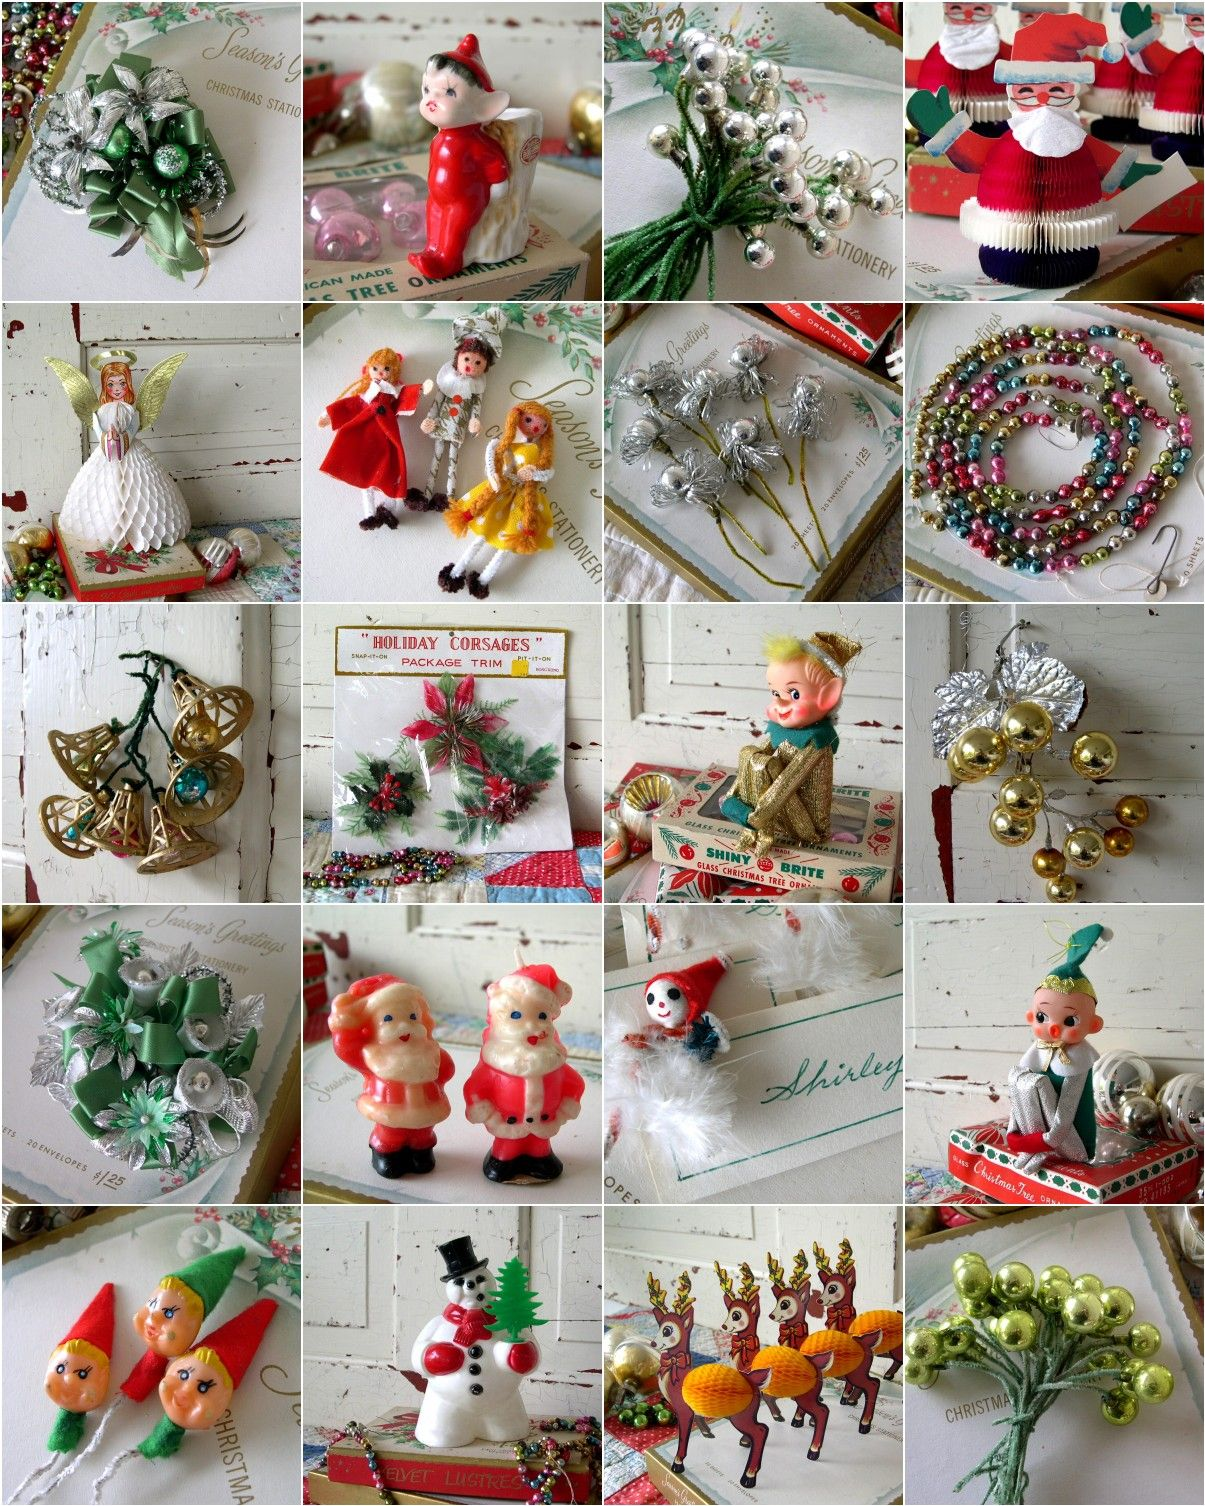 Old Christmas Tree Decorations: Vintage Christmas Decorations